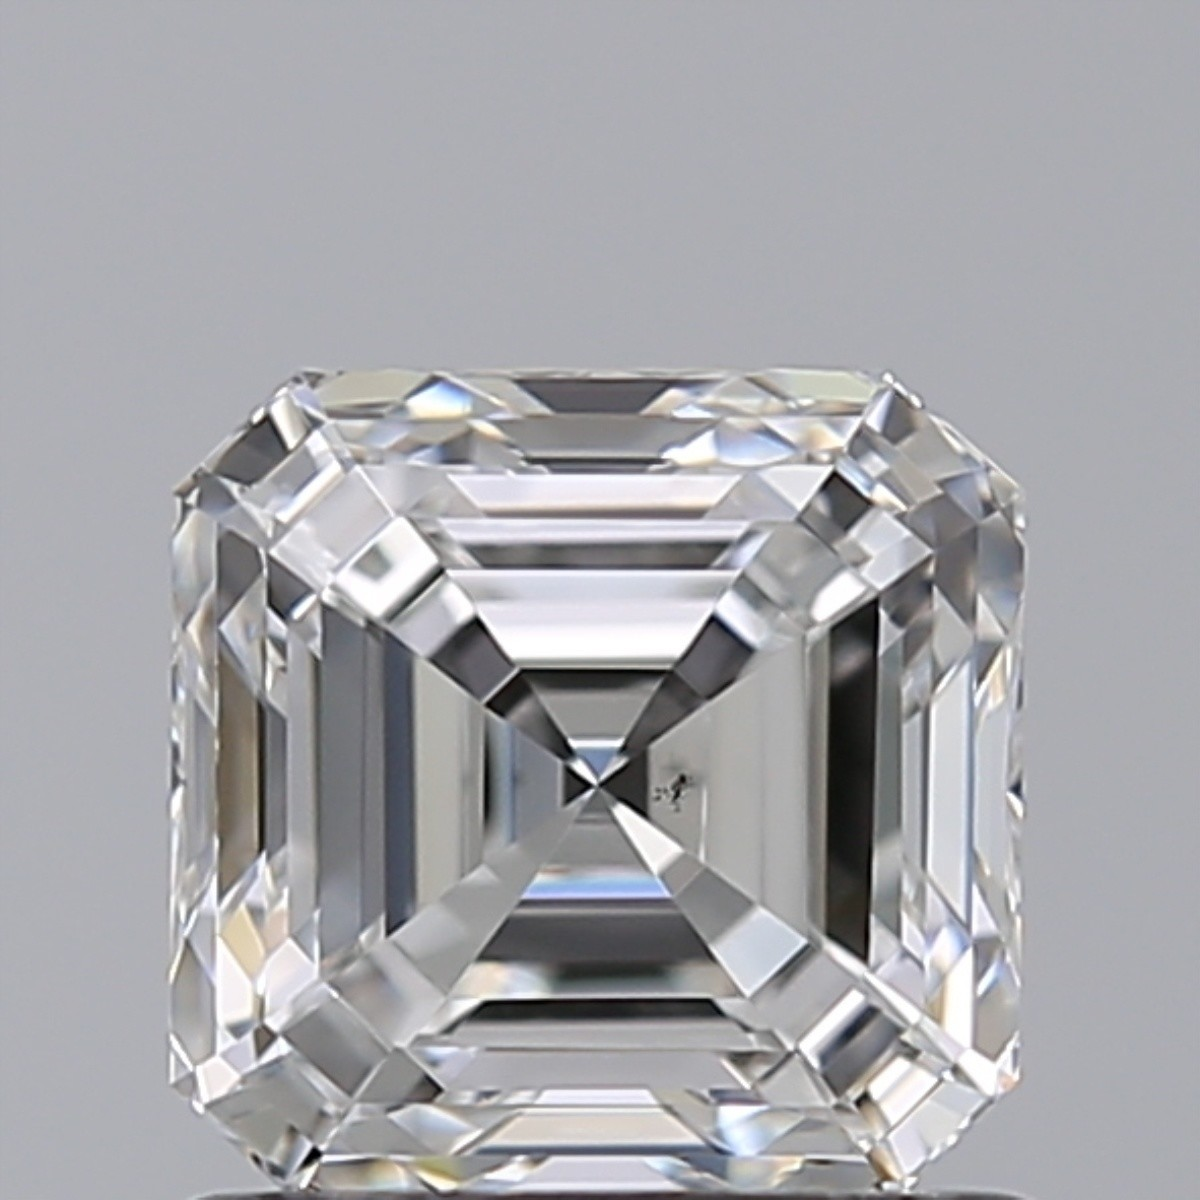 1.01 Carat Asscher Diamond (E/VS2)